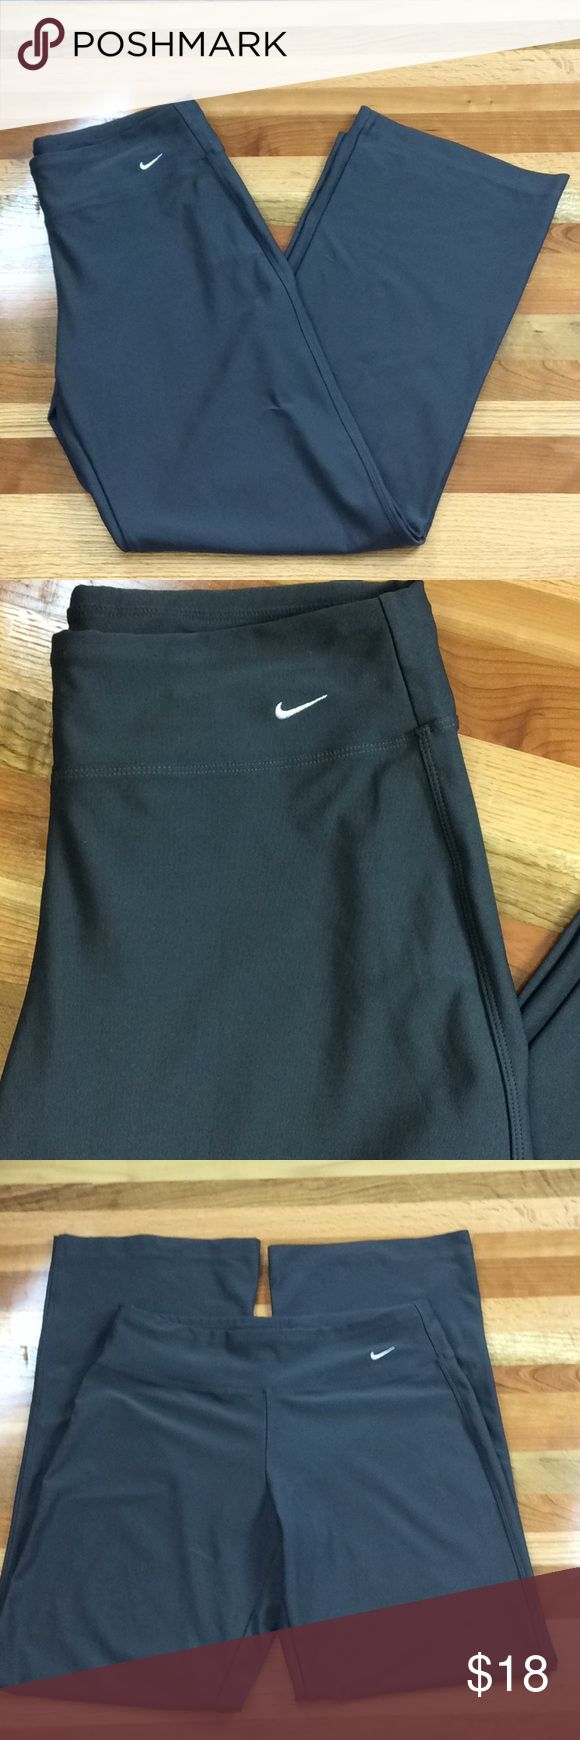 "Nike Fit Dry Gray Athletic Yoga Pants Nike Fit Dry Women's Gray Athletic Yoga Pants Size Small Waist-14"" Length-38"" Inseam-29"" A couple yellow spots on material tag. Nike Pants Track Pants & Joggers"